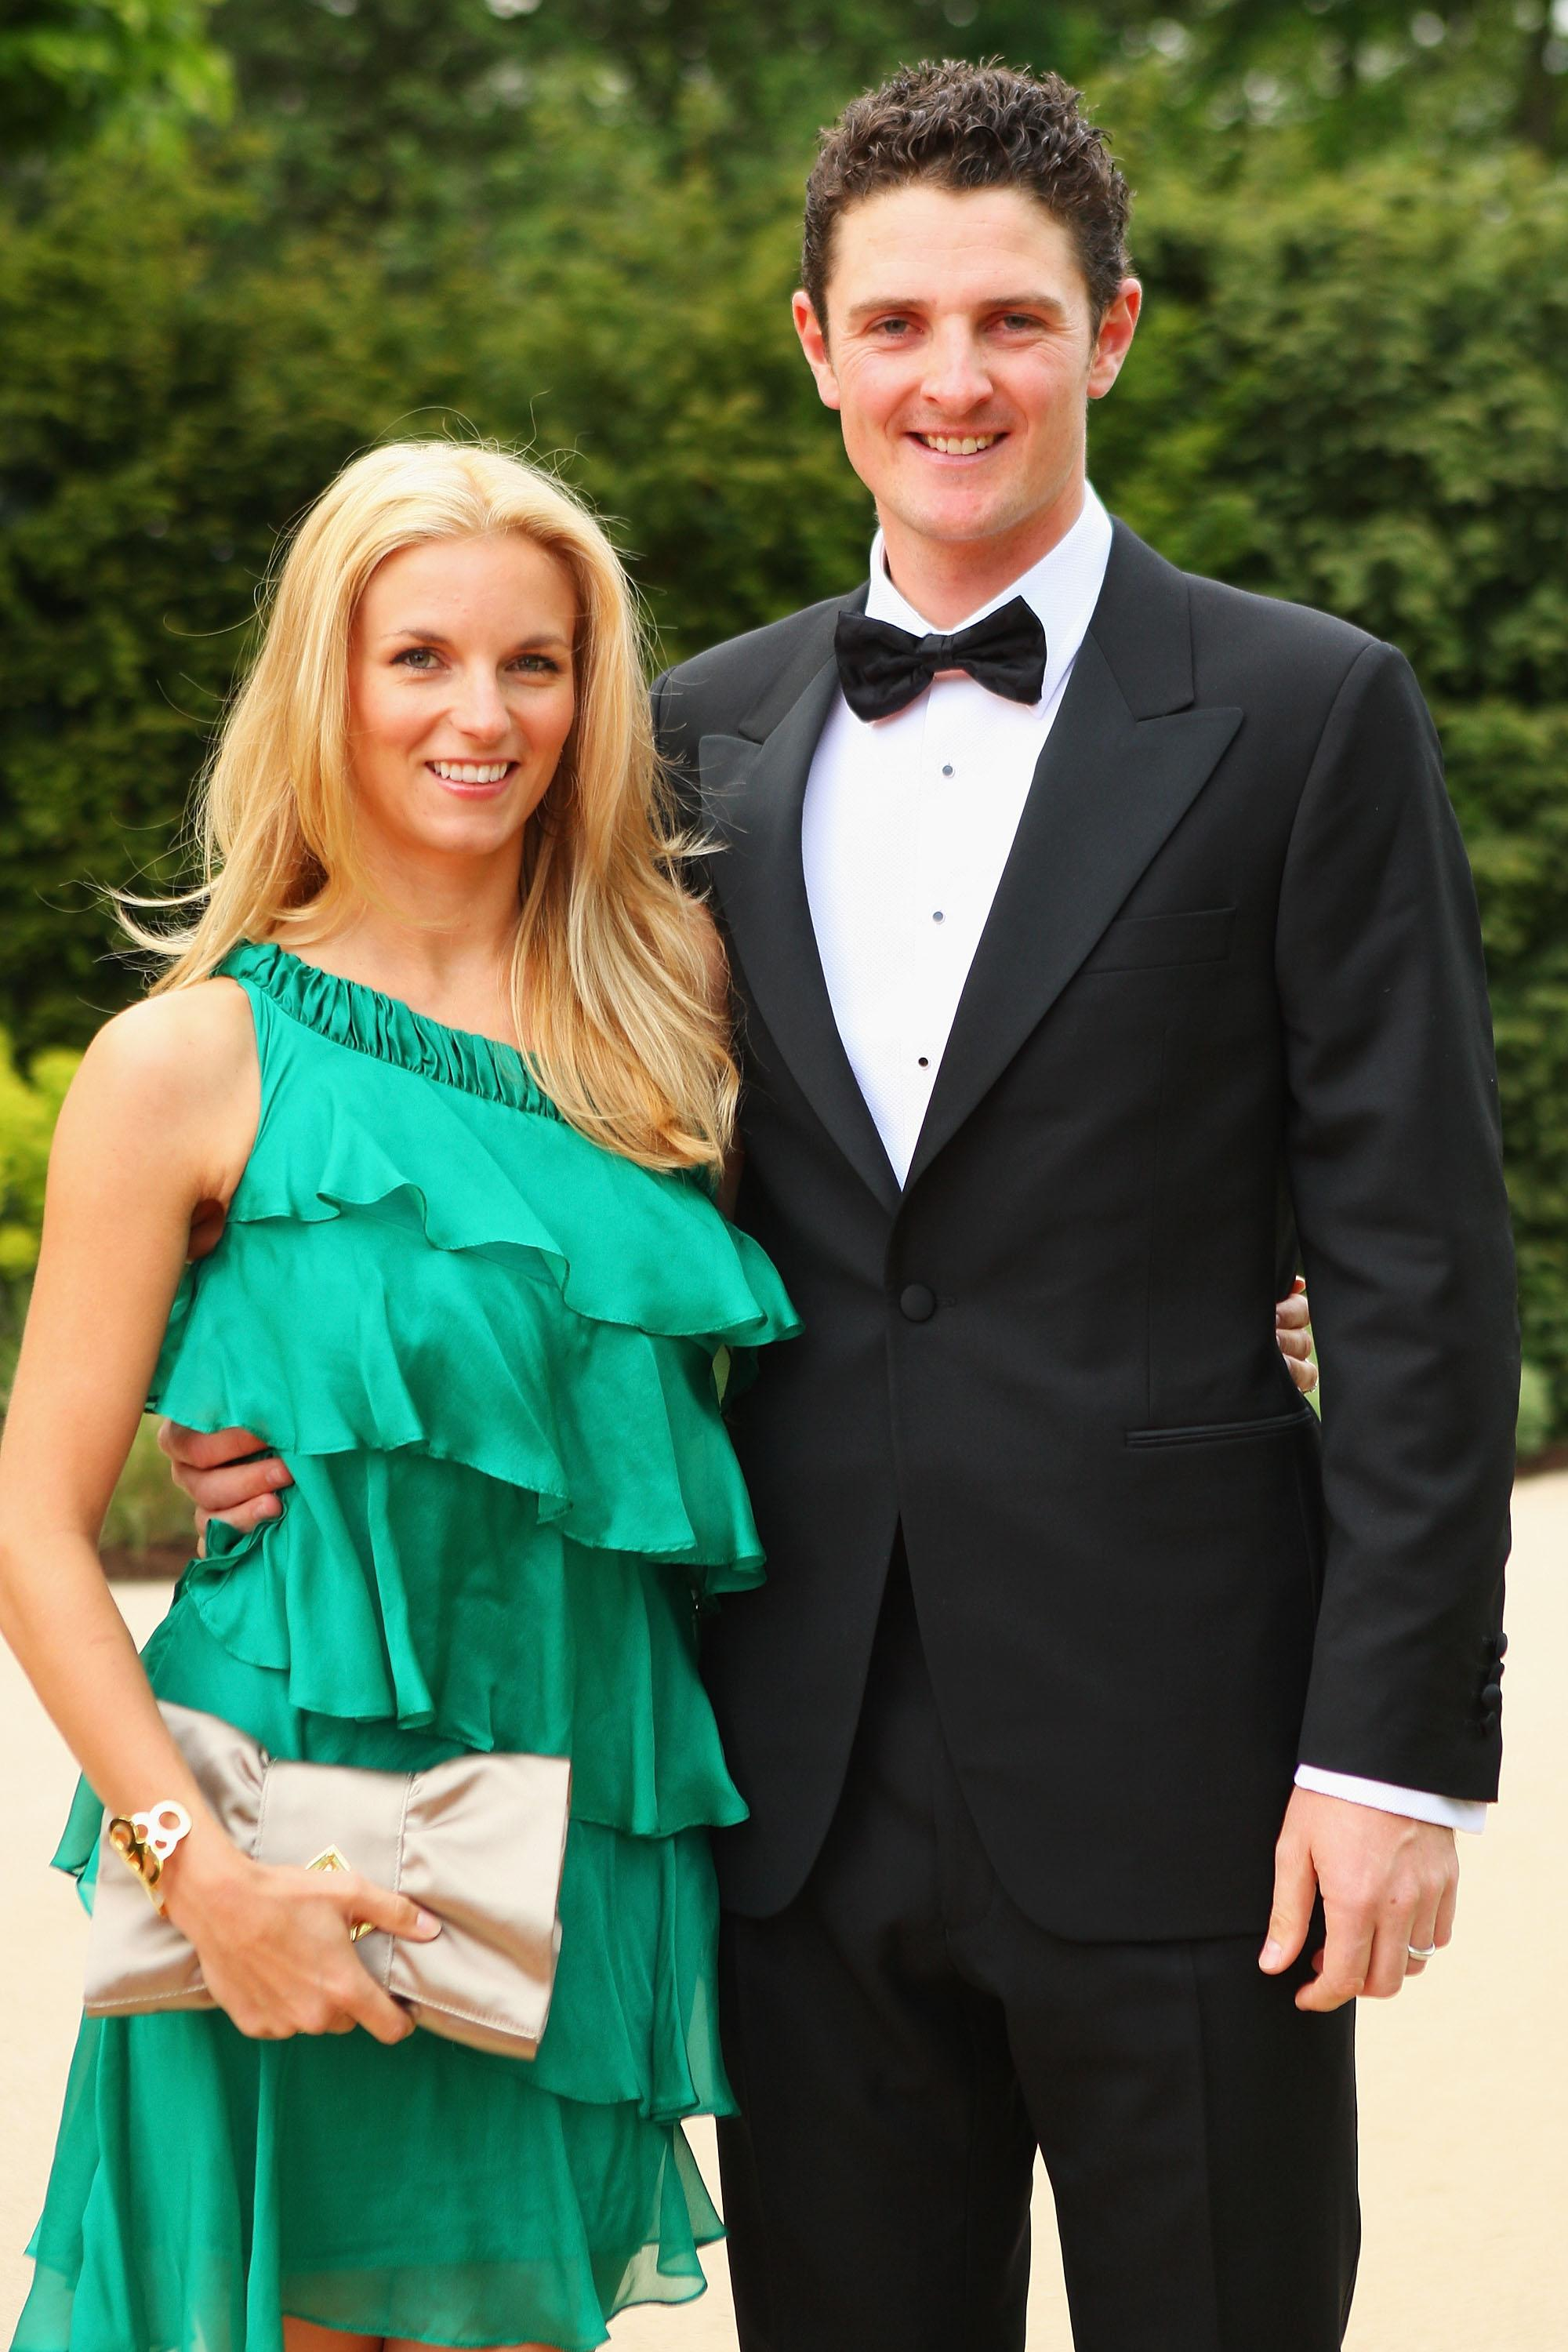 Justin Rose and wife Kate 10 years ago